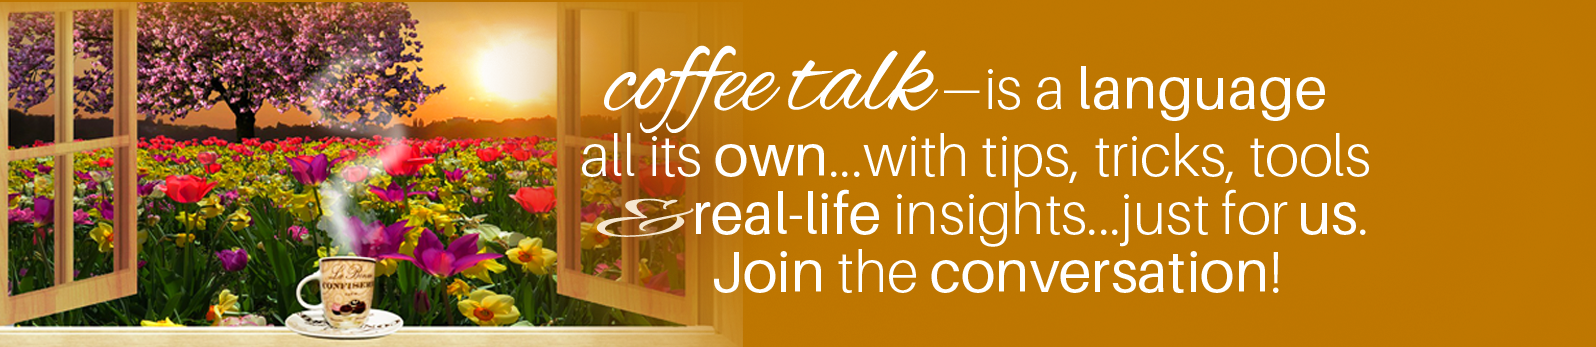 5_Womens-Inner-Circle_Coffee Talk-banner